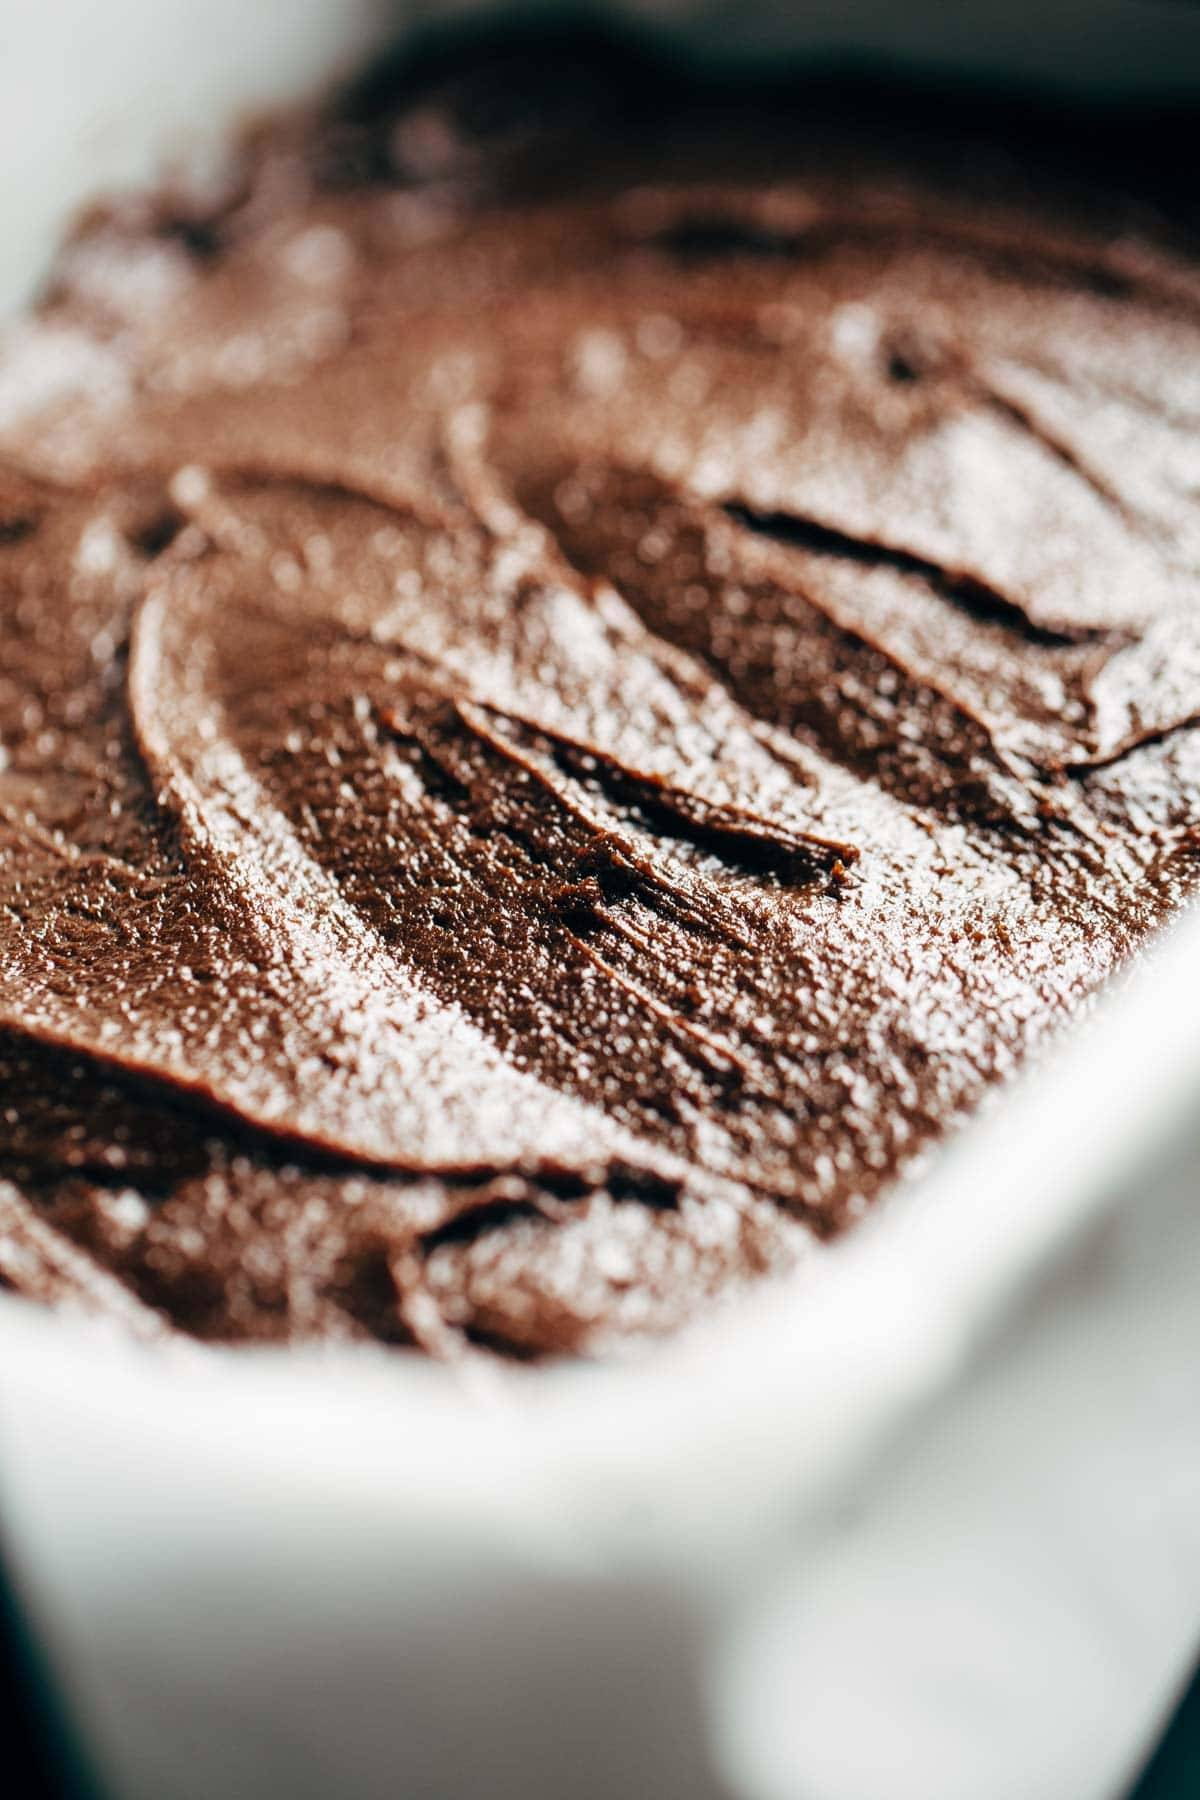 Espresso brownie batter in a dish.